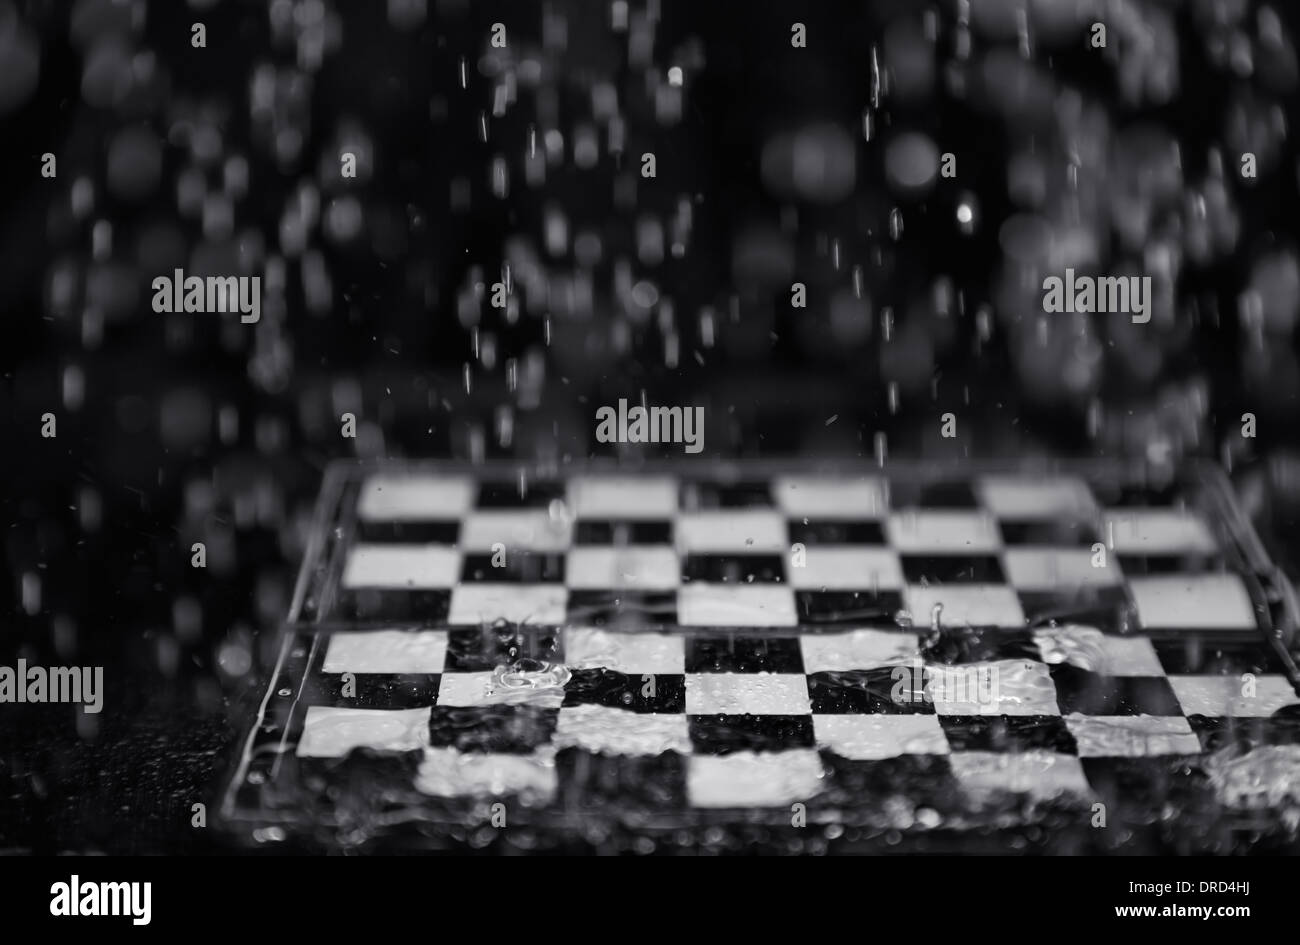 Chessboard under the rain. Close-up view - Stock Image